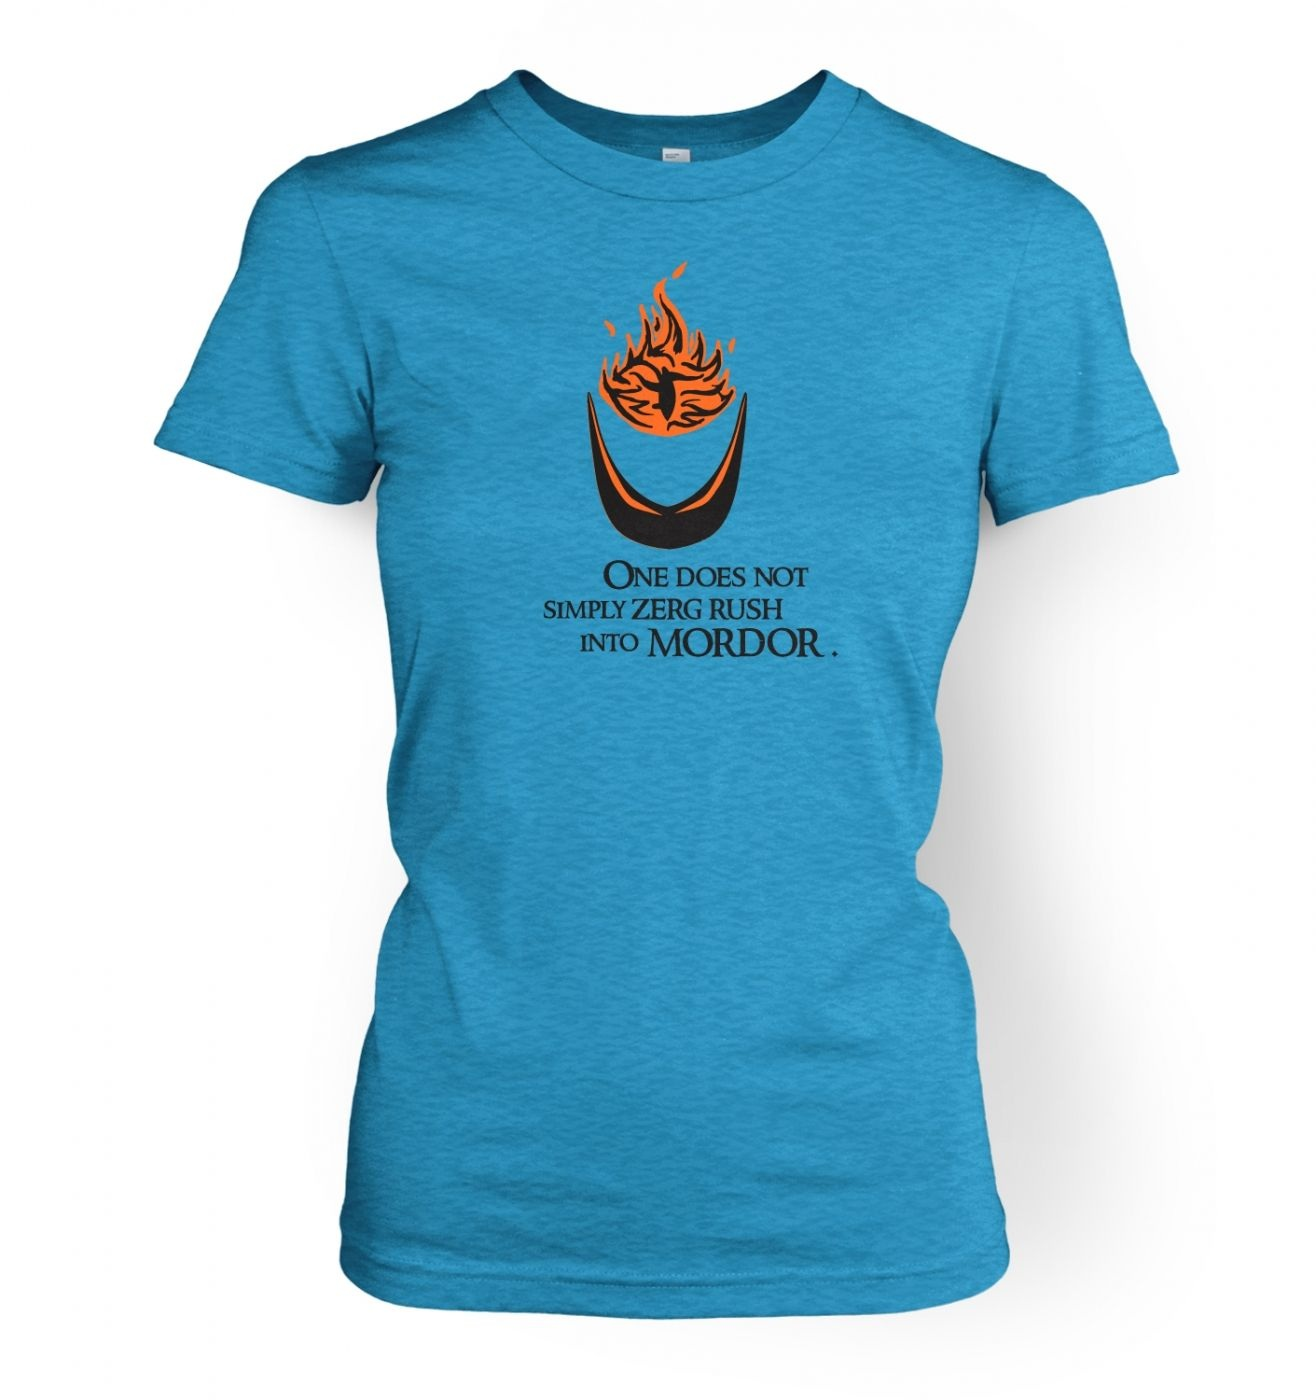 Women's Zerg Rush into Mordor t-shirt